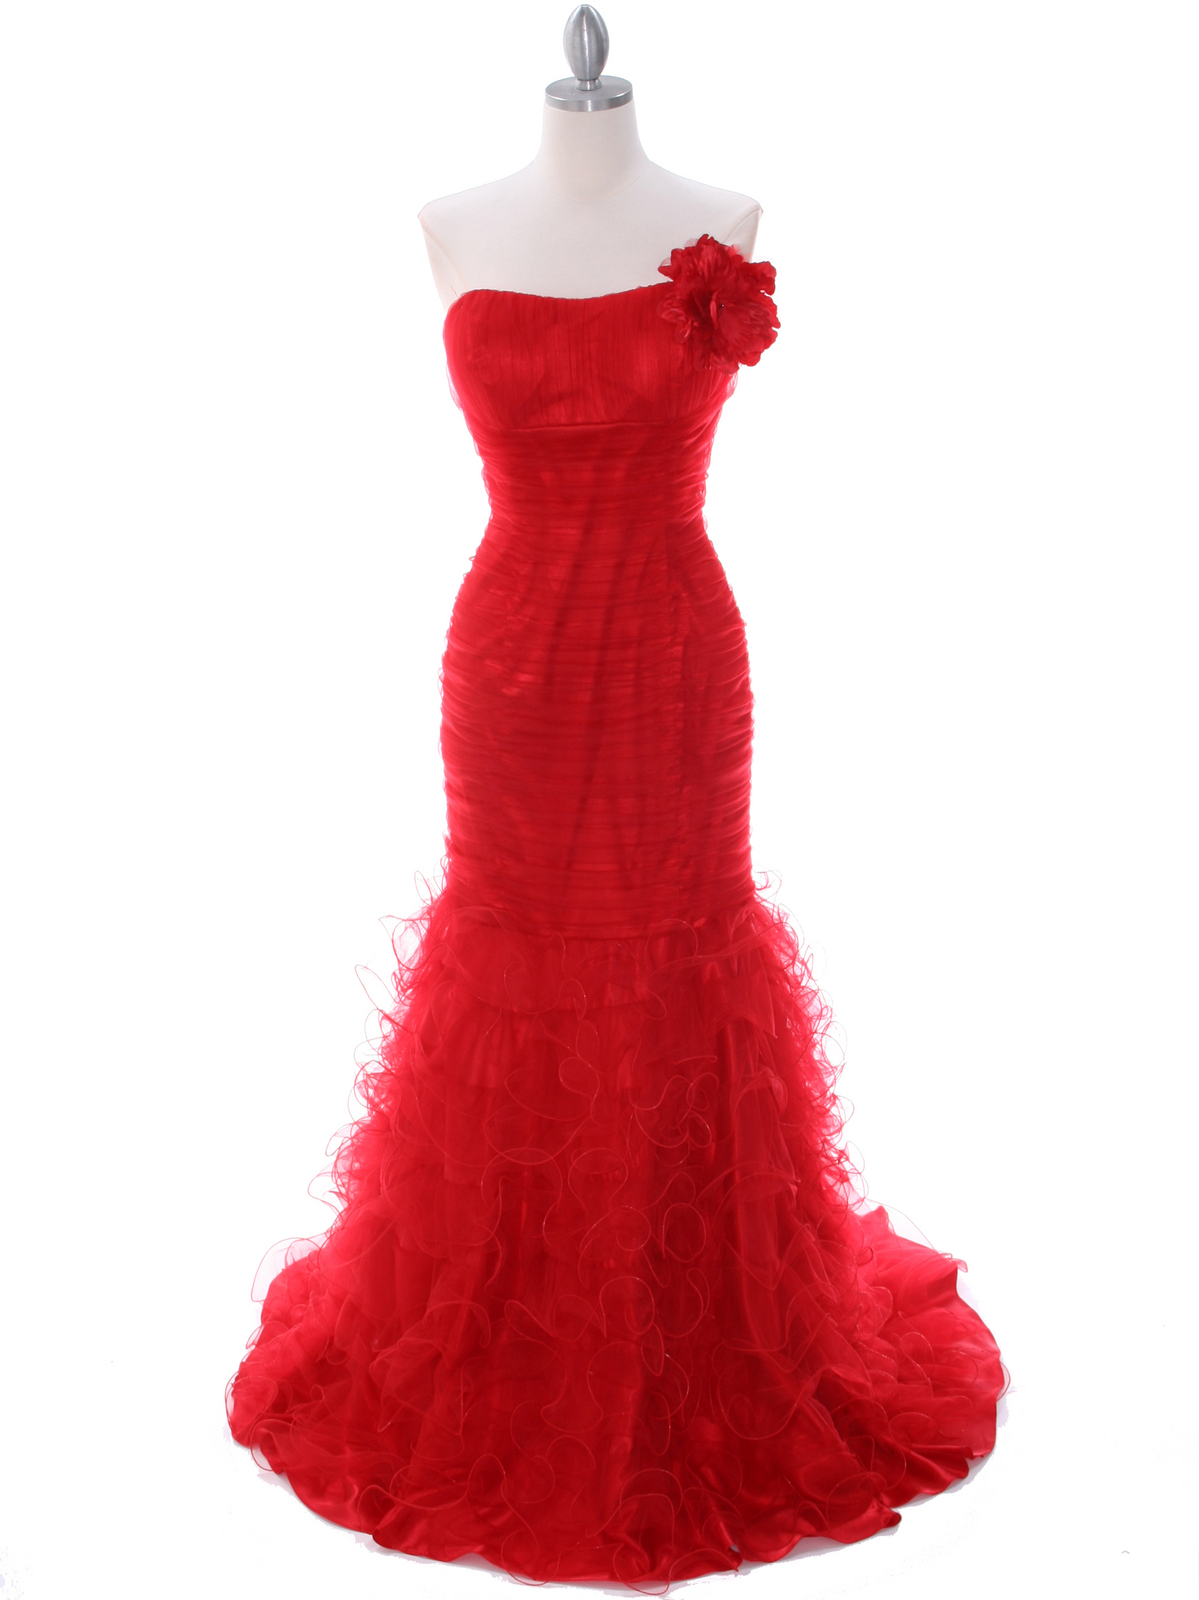 Red Lace Prom Dress Sung Boutique L A